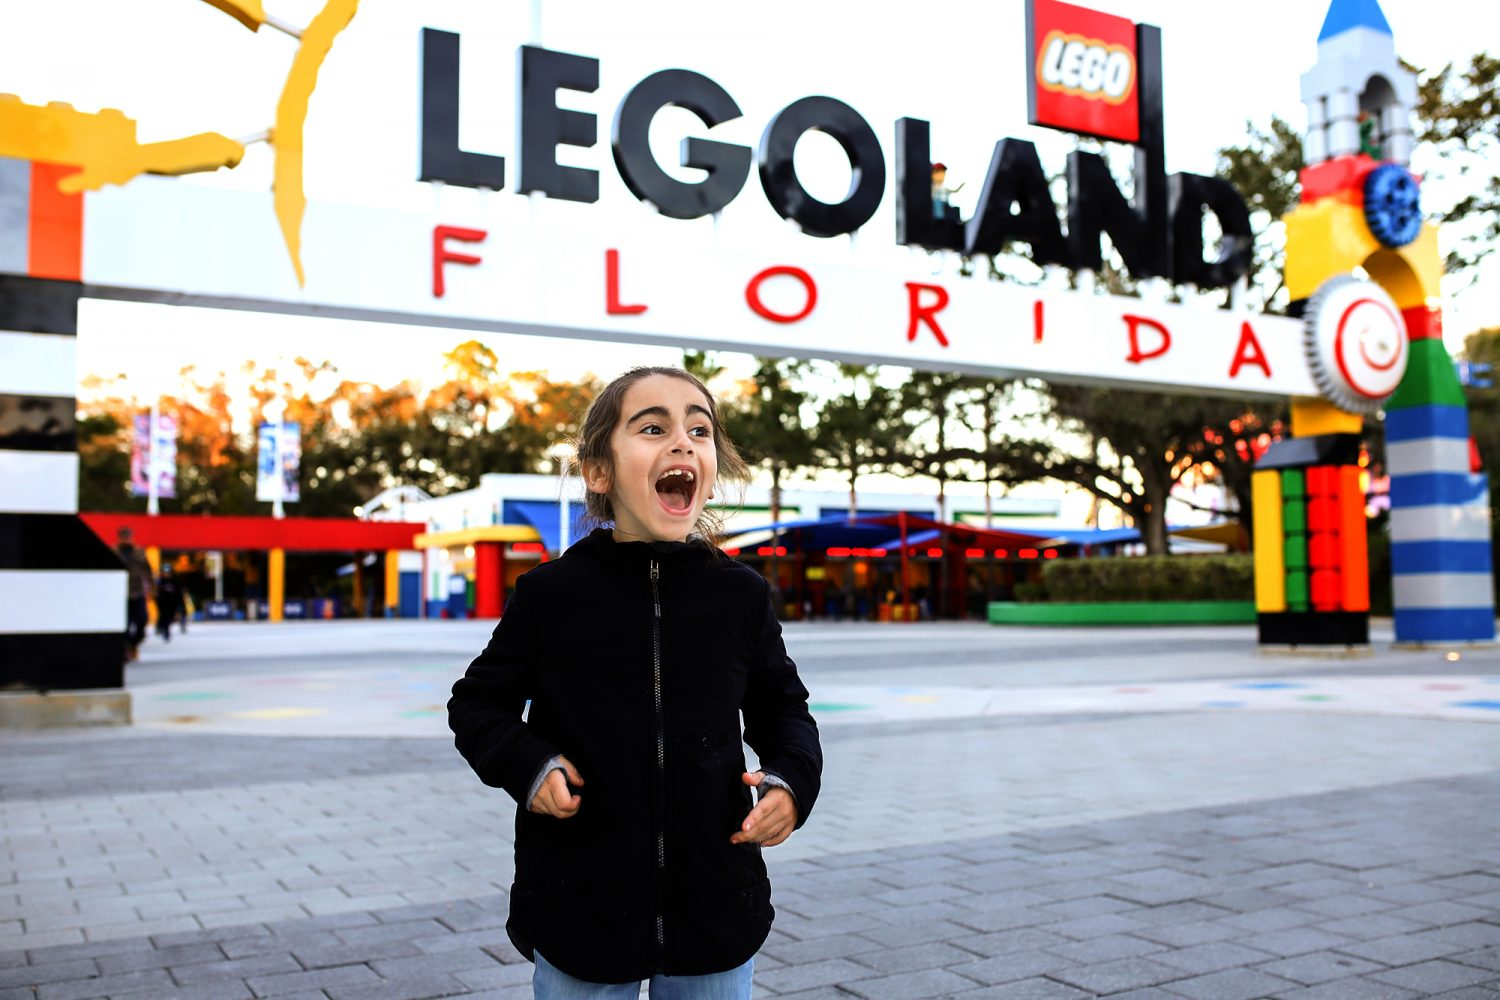 girl standing at the entrance of legoland florida